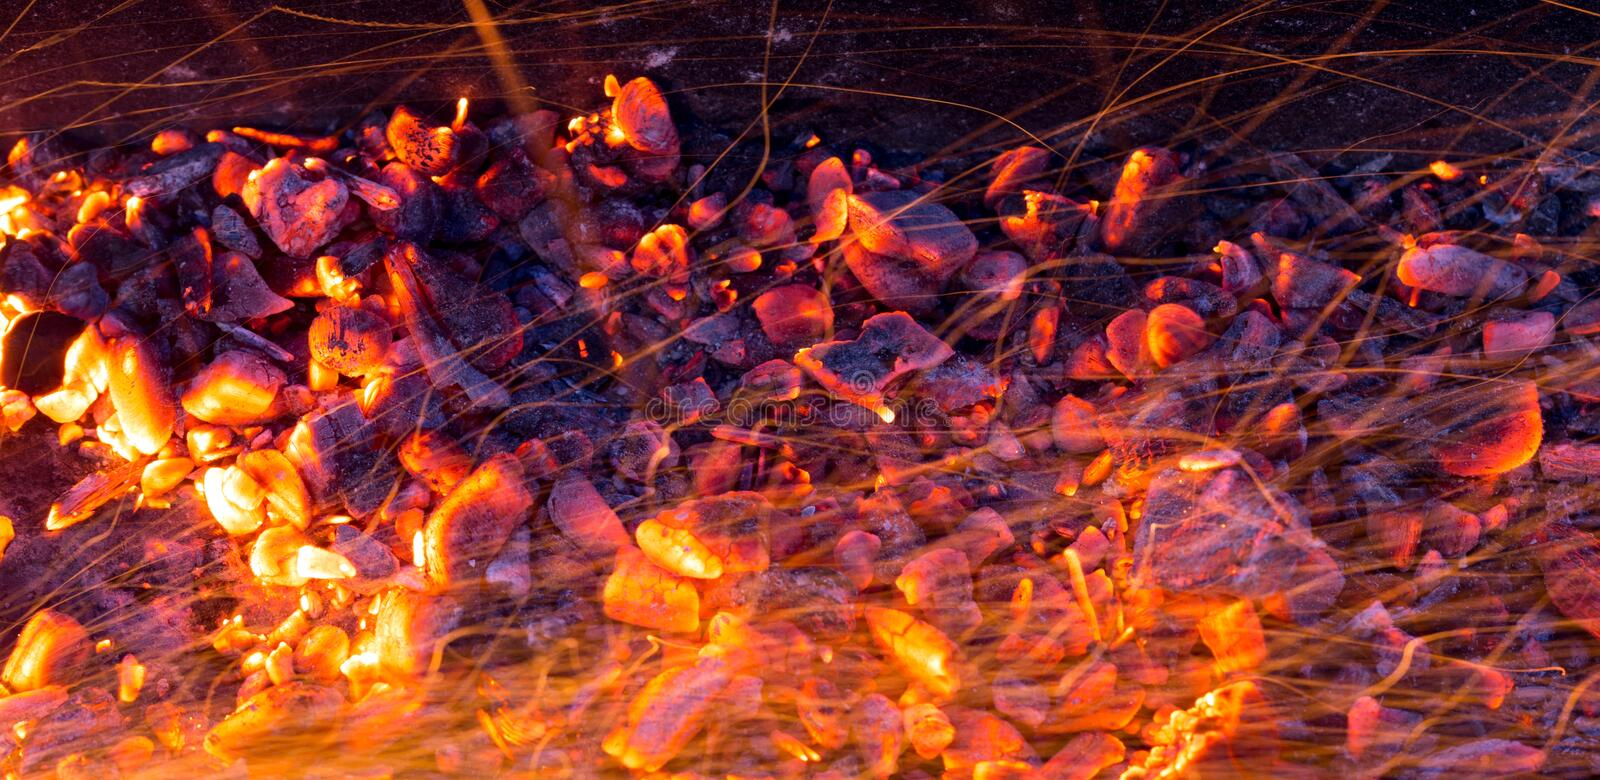 Burning charcoal as background royalty free stock image